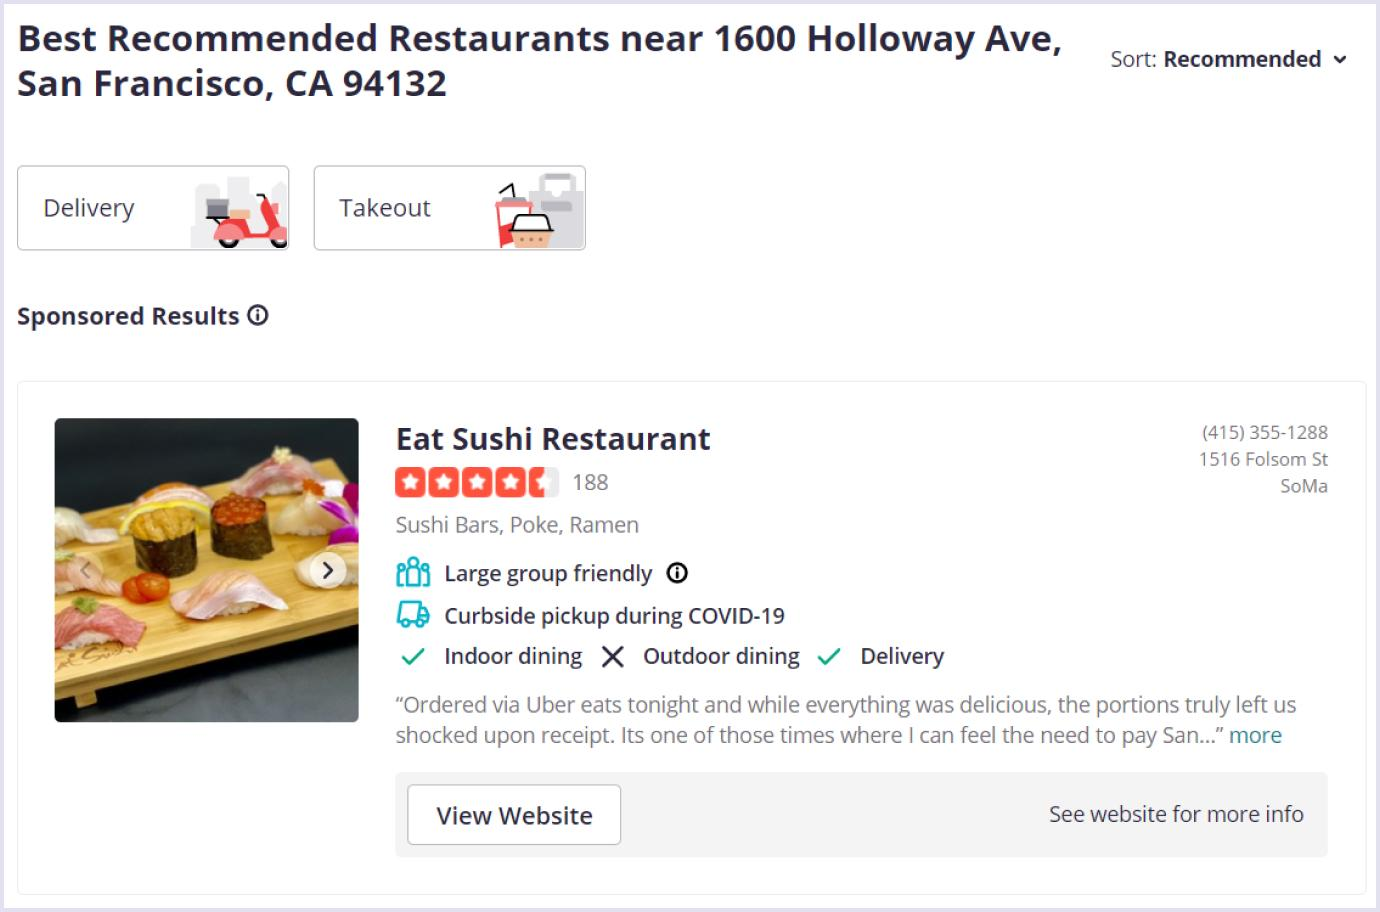 Useful tips for a website like Yelp